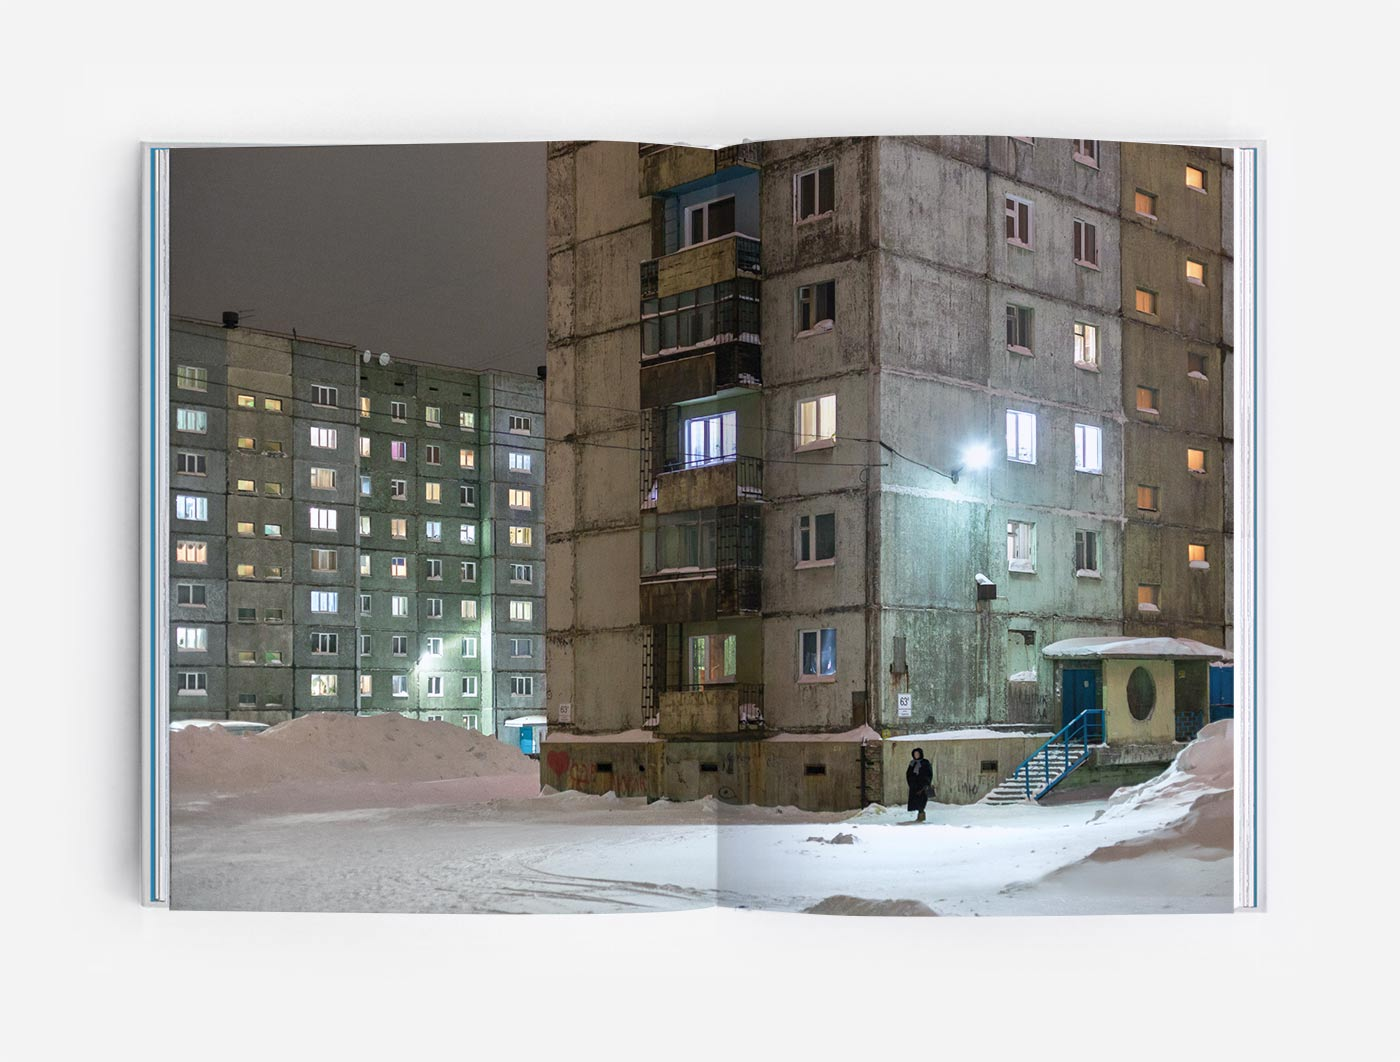 Soviet-era landscapes of Norilsk, Siberia